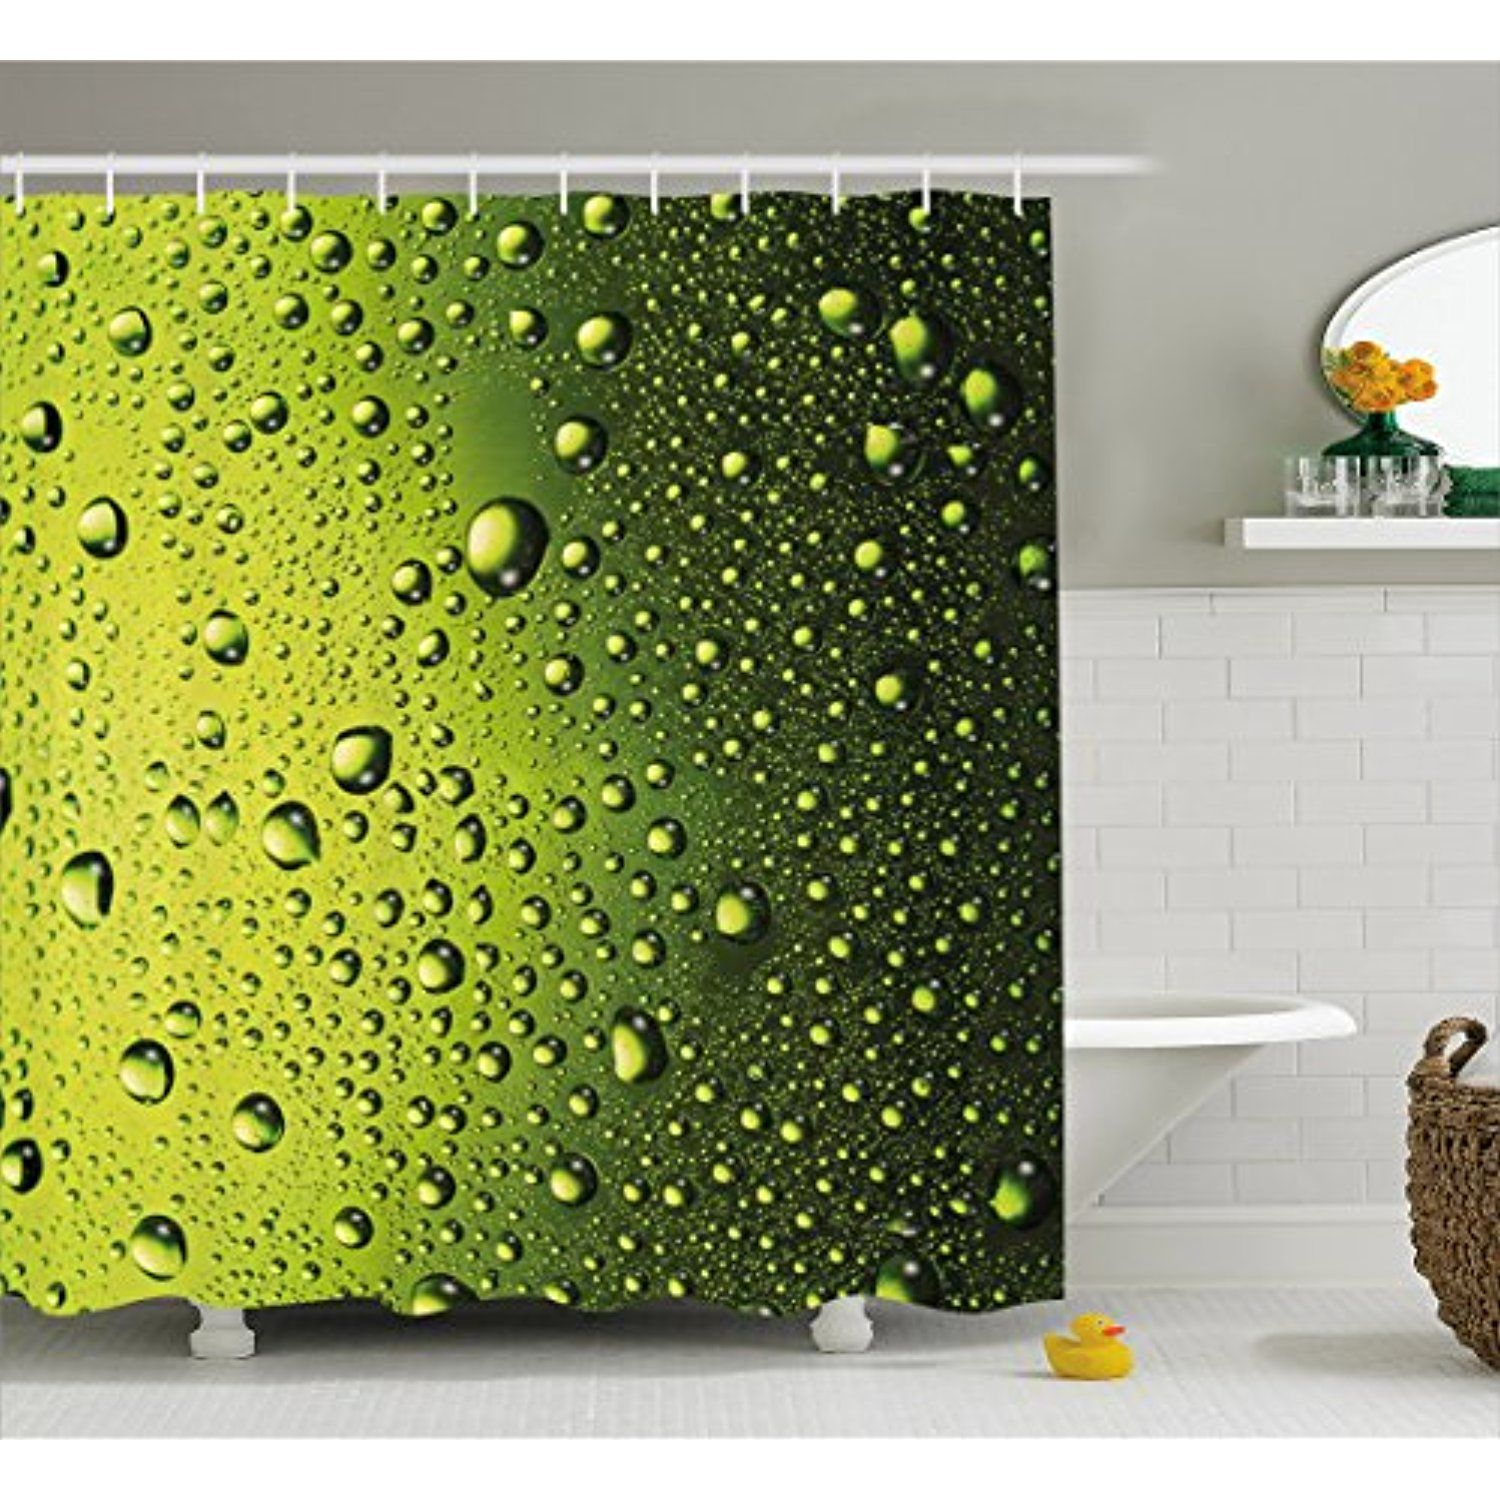 Hunter Green Shower Curtain By Lunarable Water Drops On The